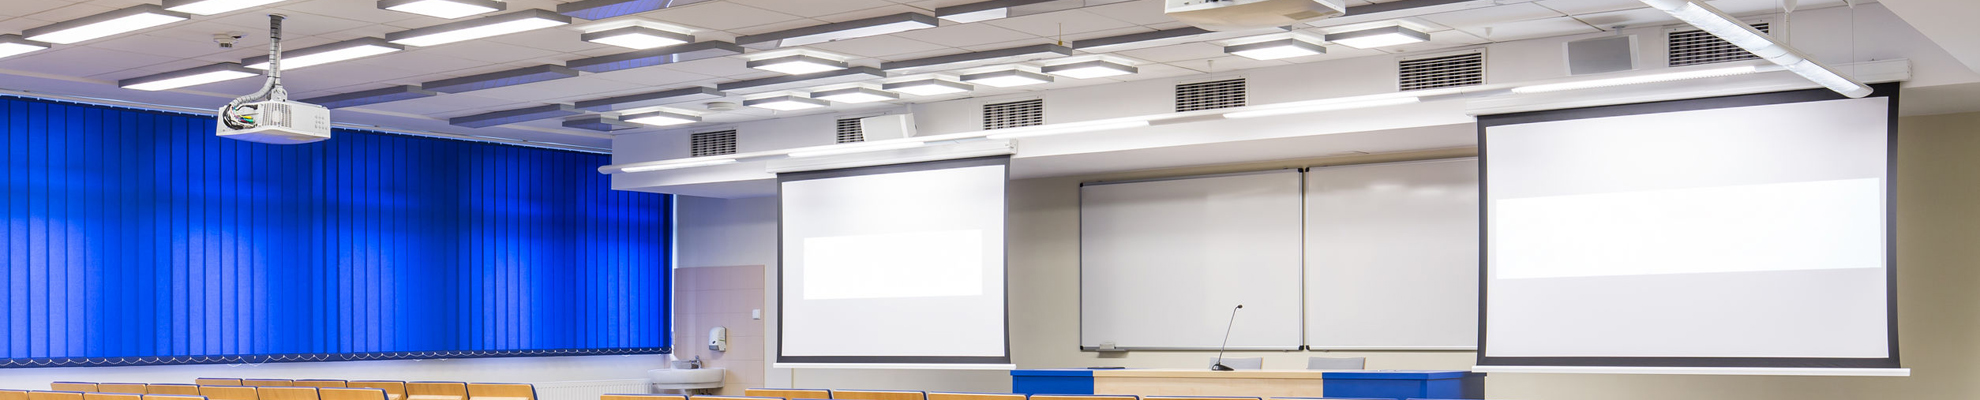 Primary Hall solution, projectors & screens